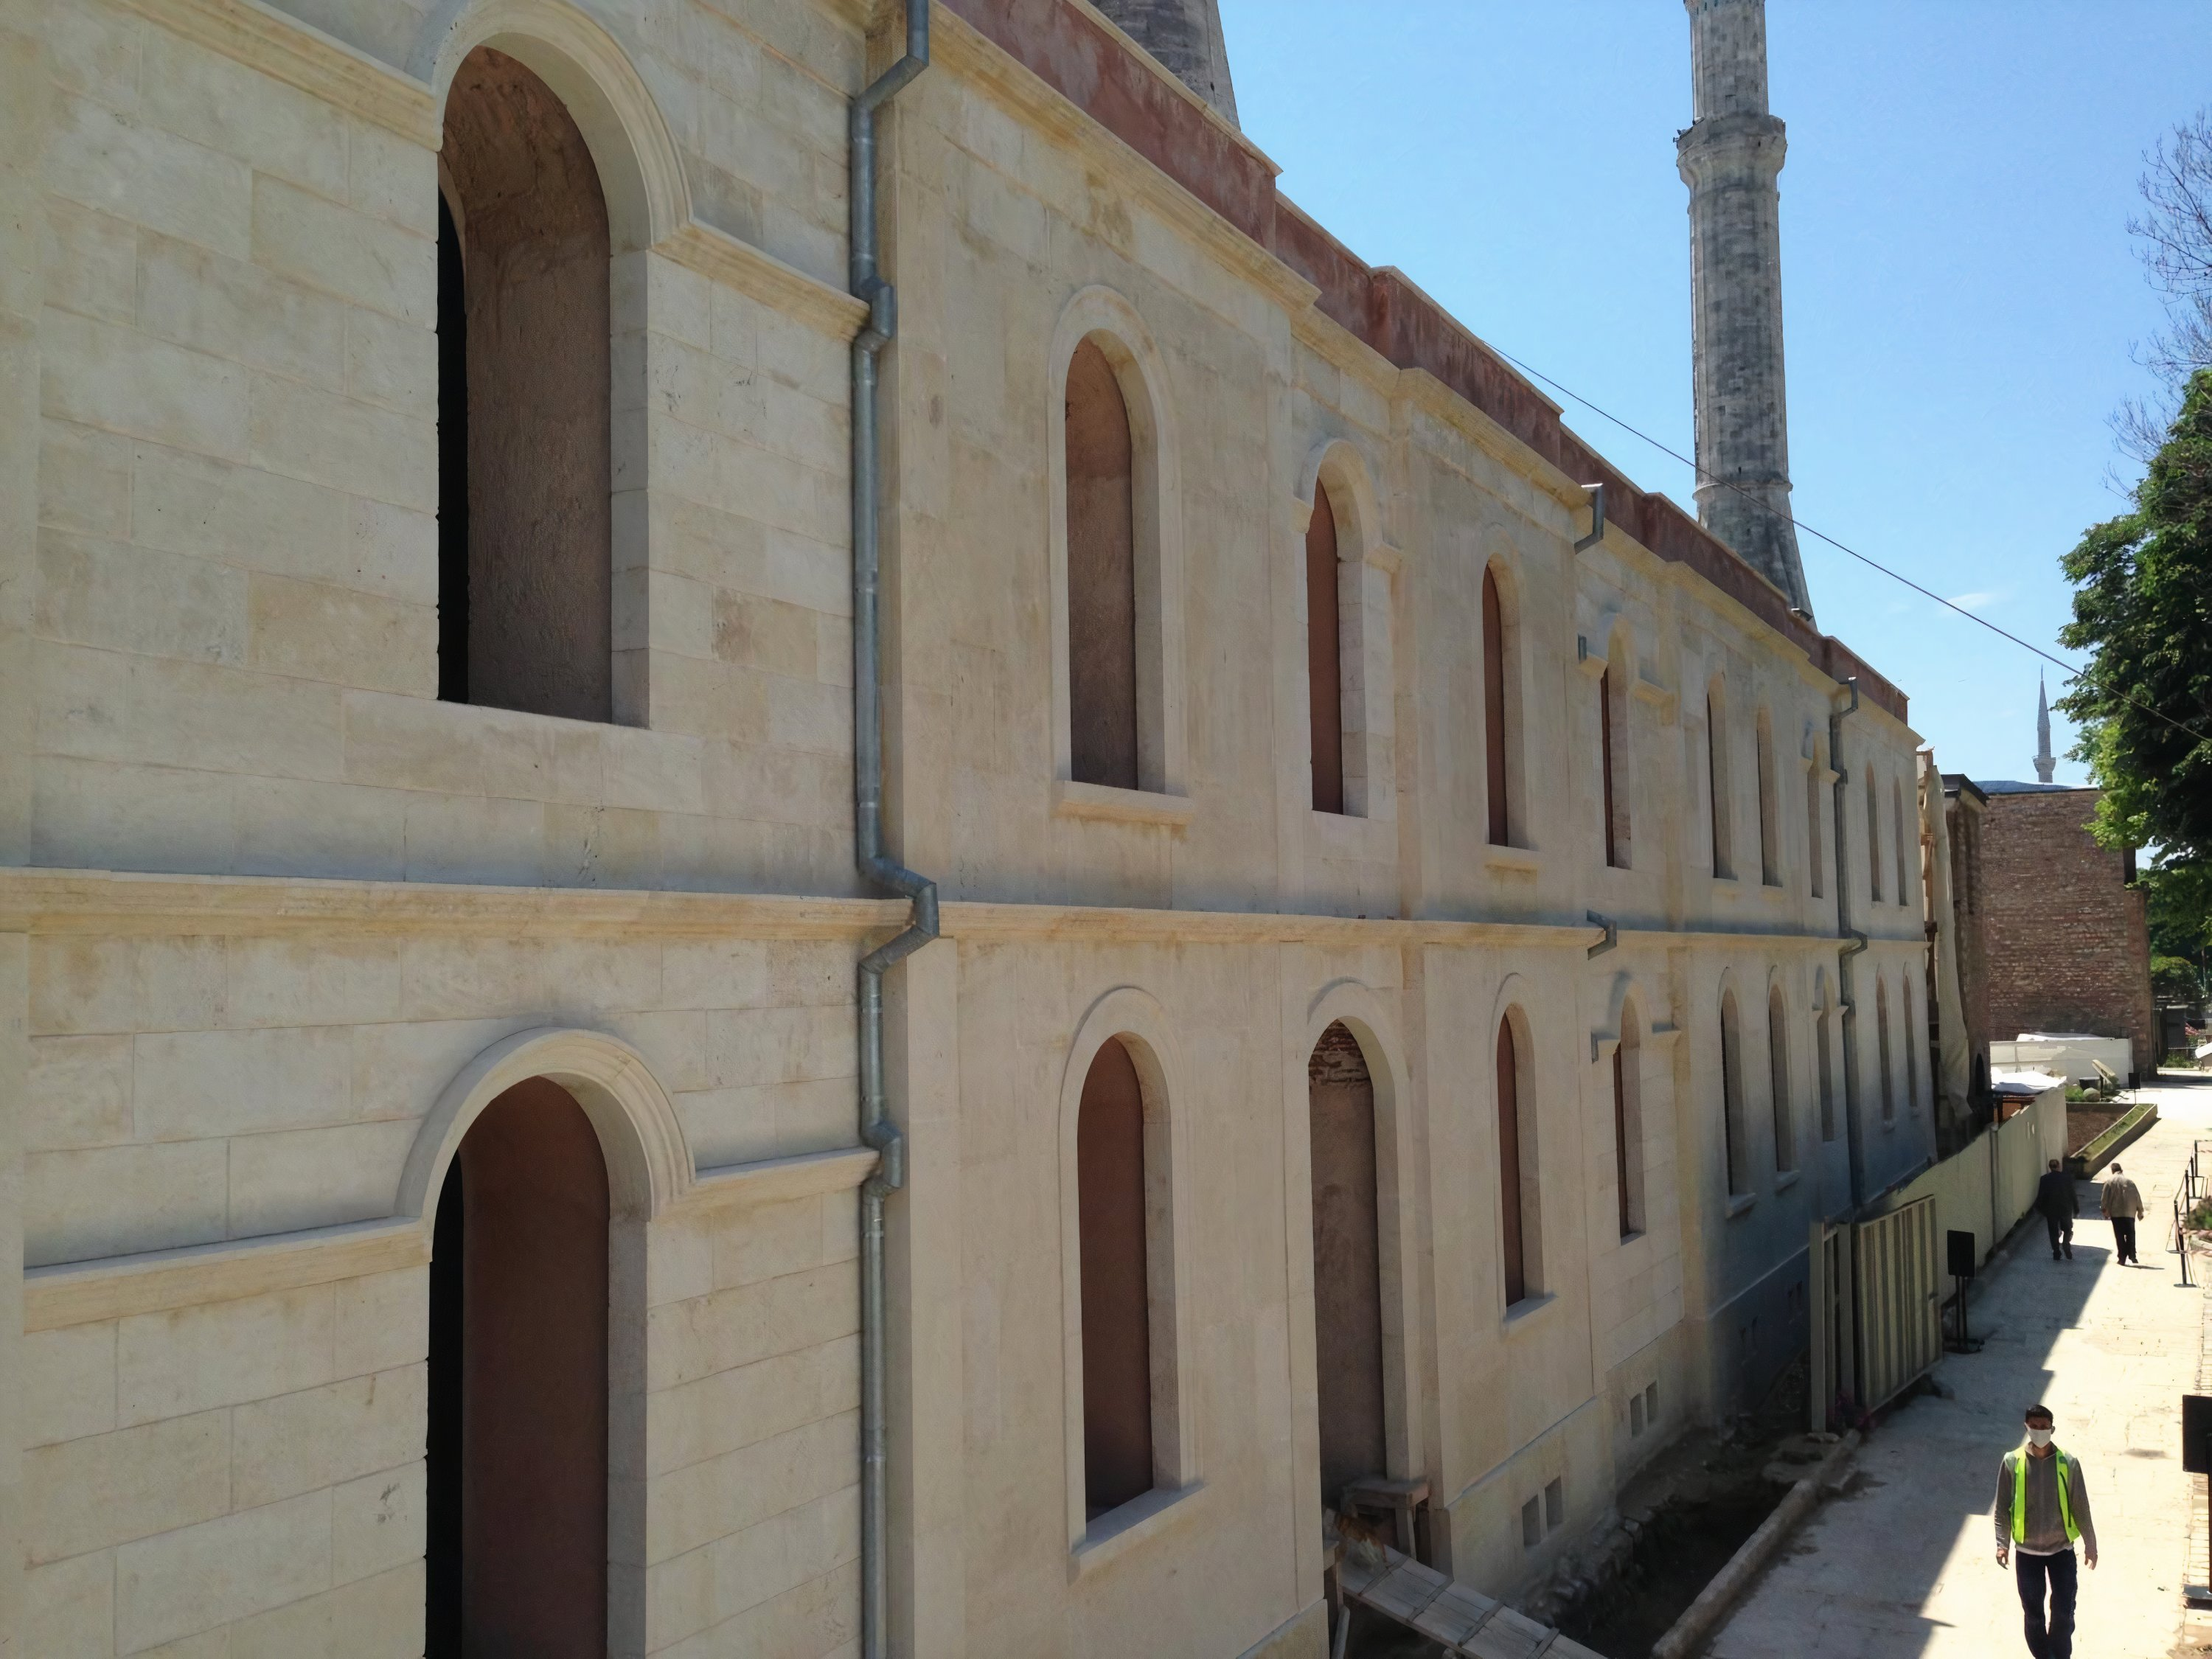 The ongoing restoration works in the historical madrasah are now at the final stage.